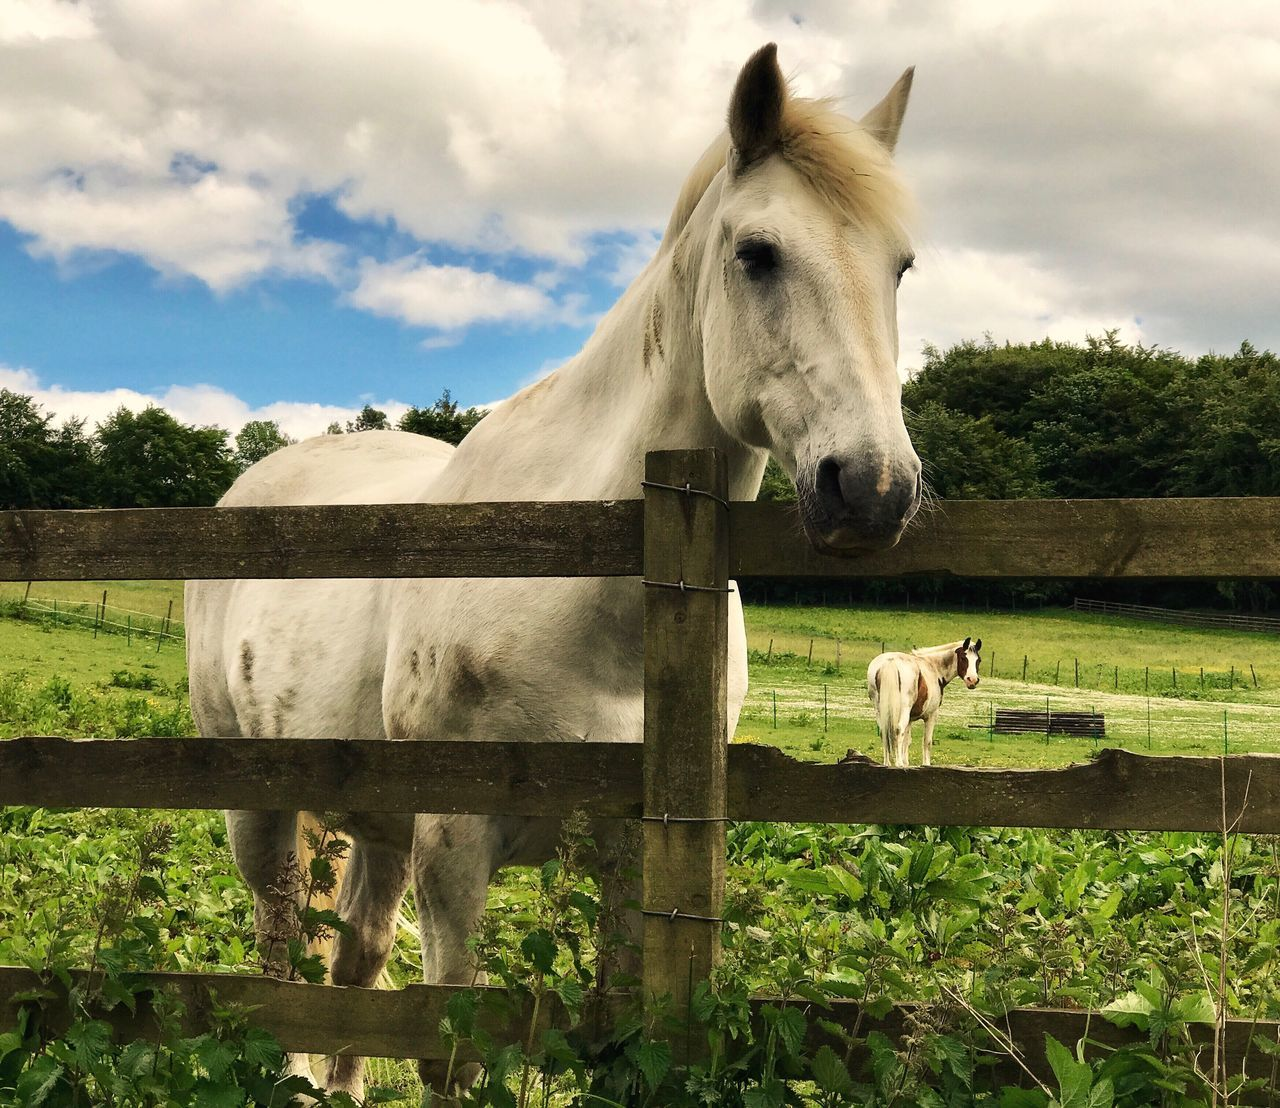 horse, domestic animals, animal themes, mammal, paddock, livestock, herbivorous, one animal, sky, field, day, standing, tree, cloud - sky, foal, outdoors, no people, grazing, grass, rural scene, nature